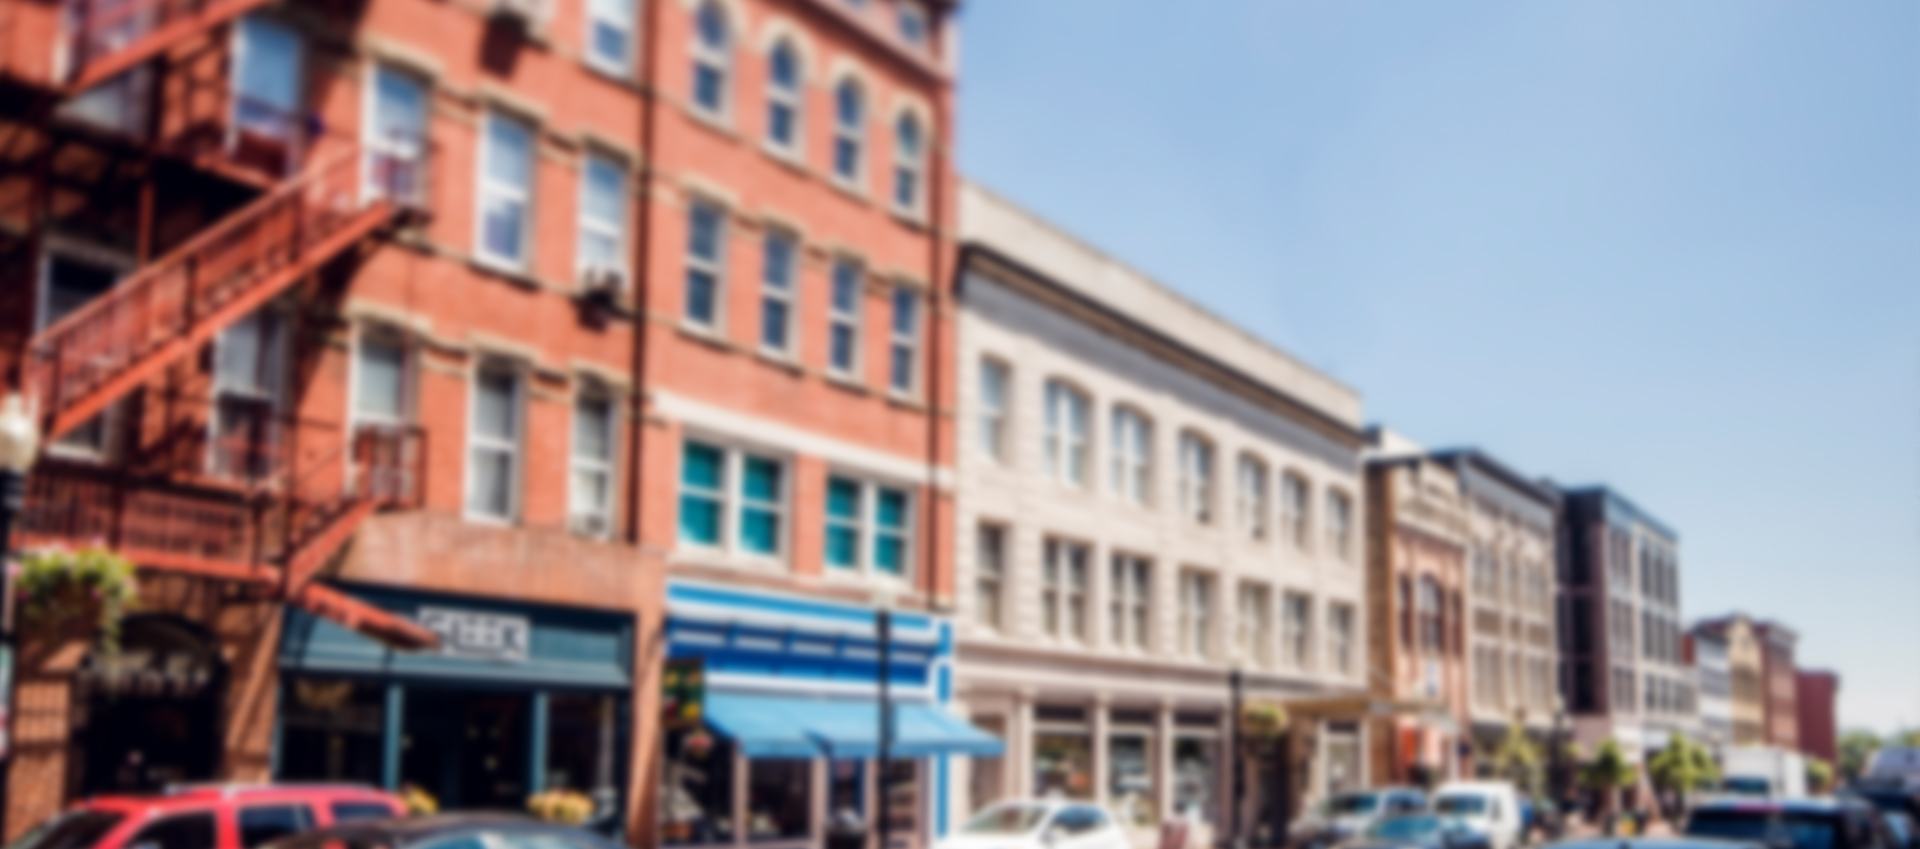 blurred background of a side street in downtown Louisville